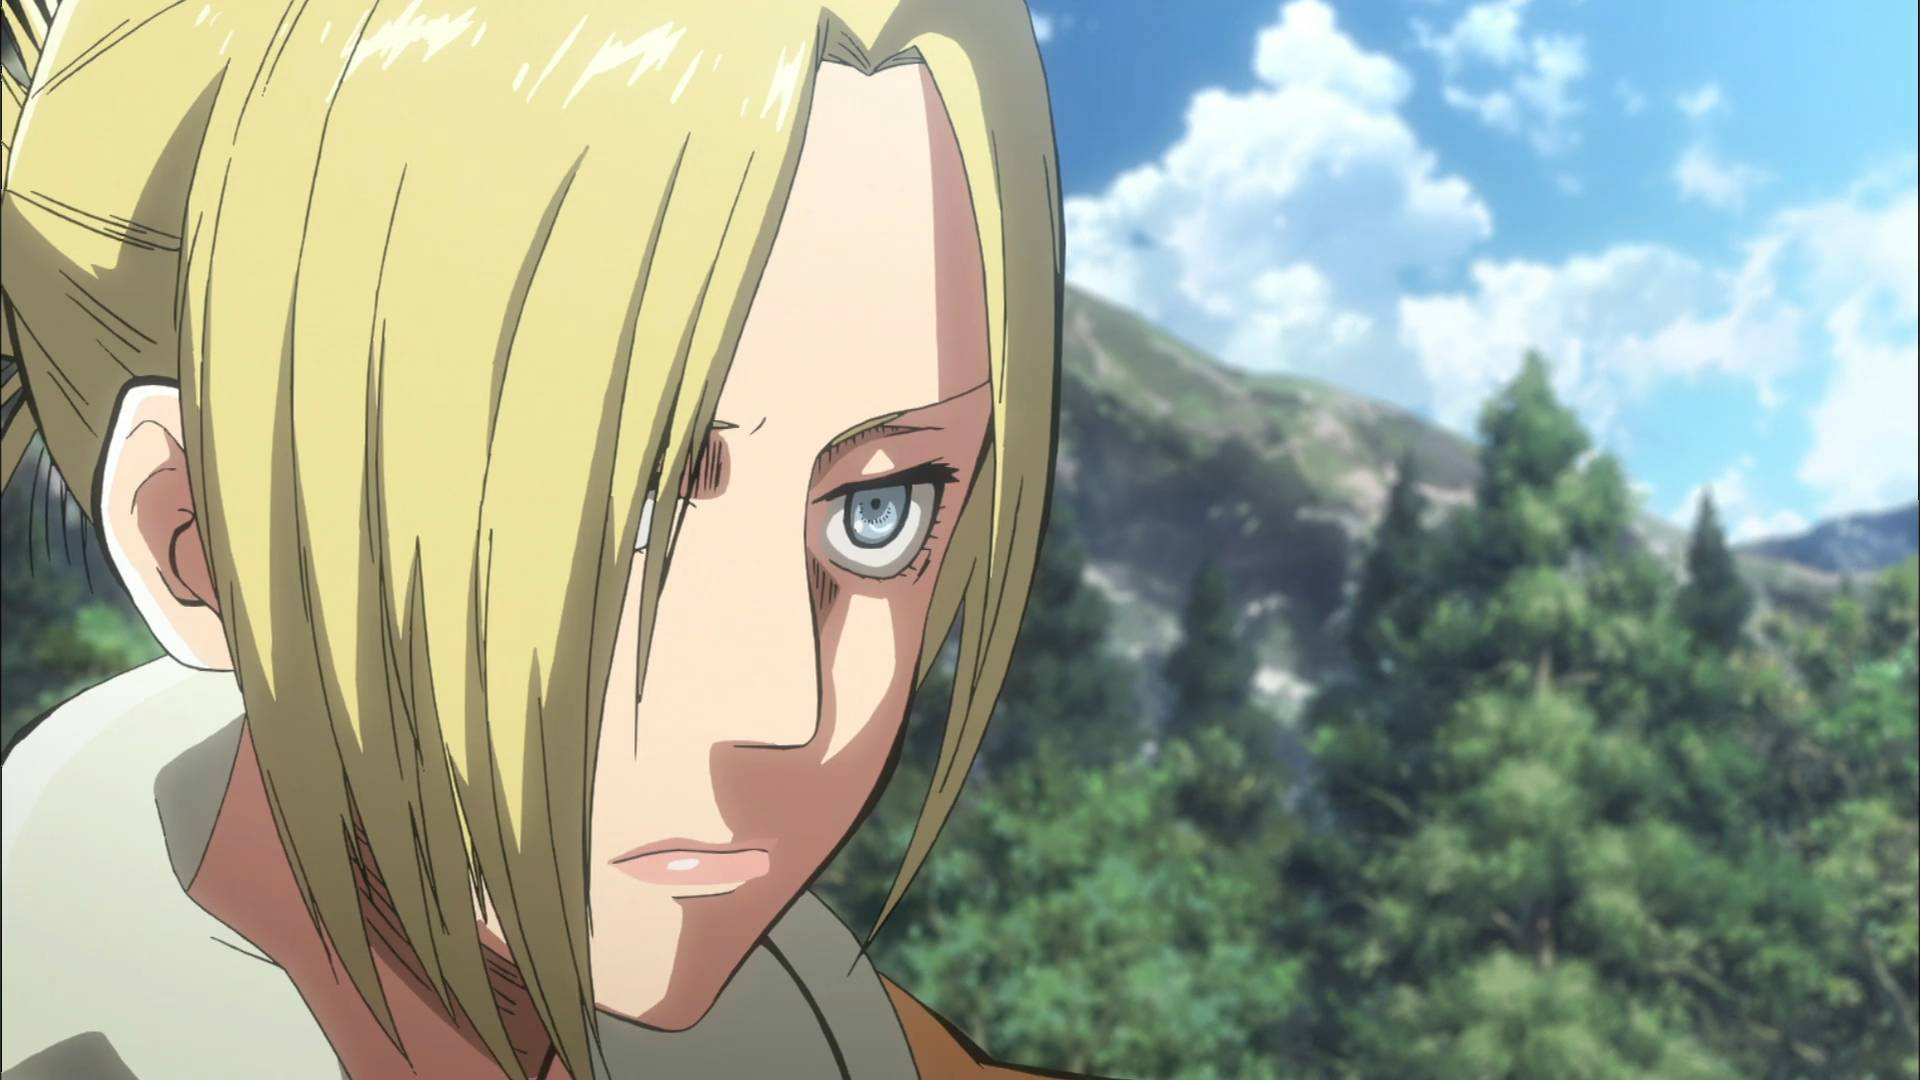 badass annie leonhart   Attack on Titan Picture 1920x1080